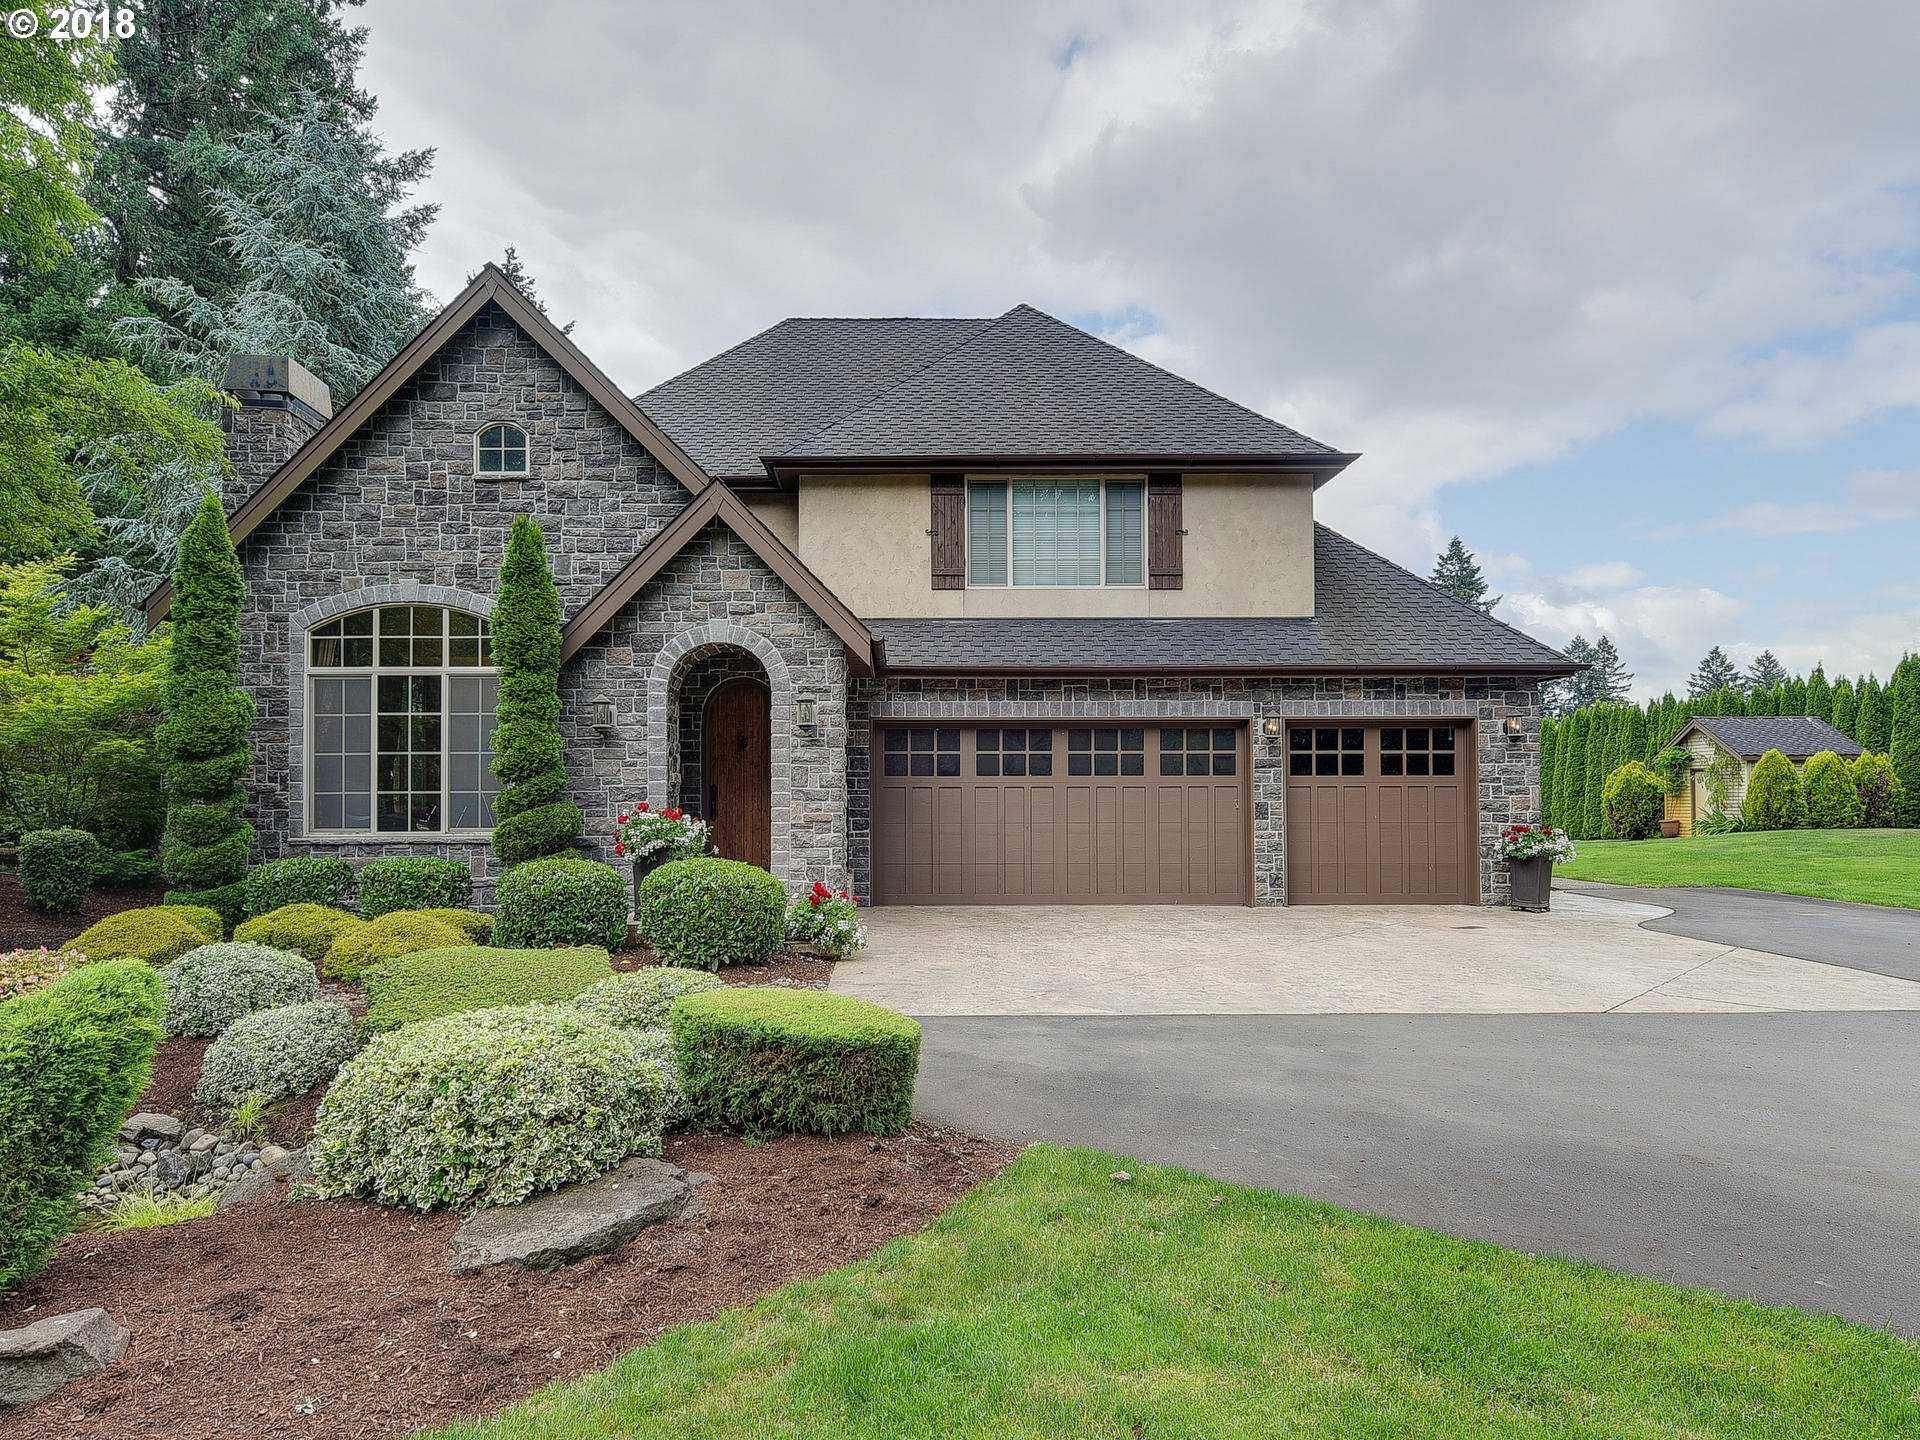 $1,890,000 - 4Br/3Ba -  for Sale in West Linn